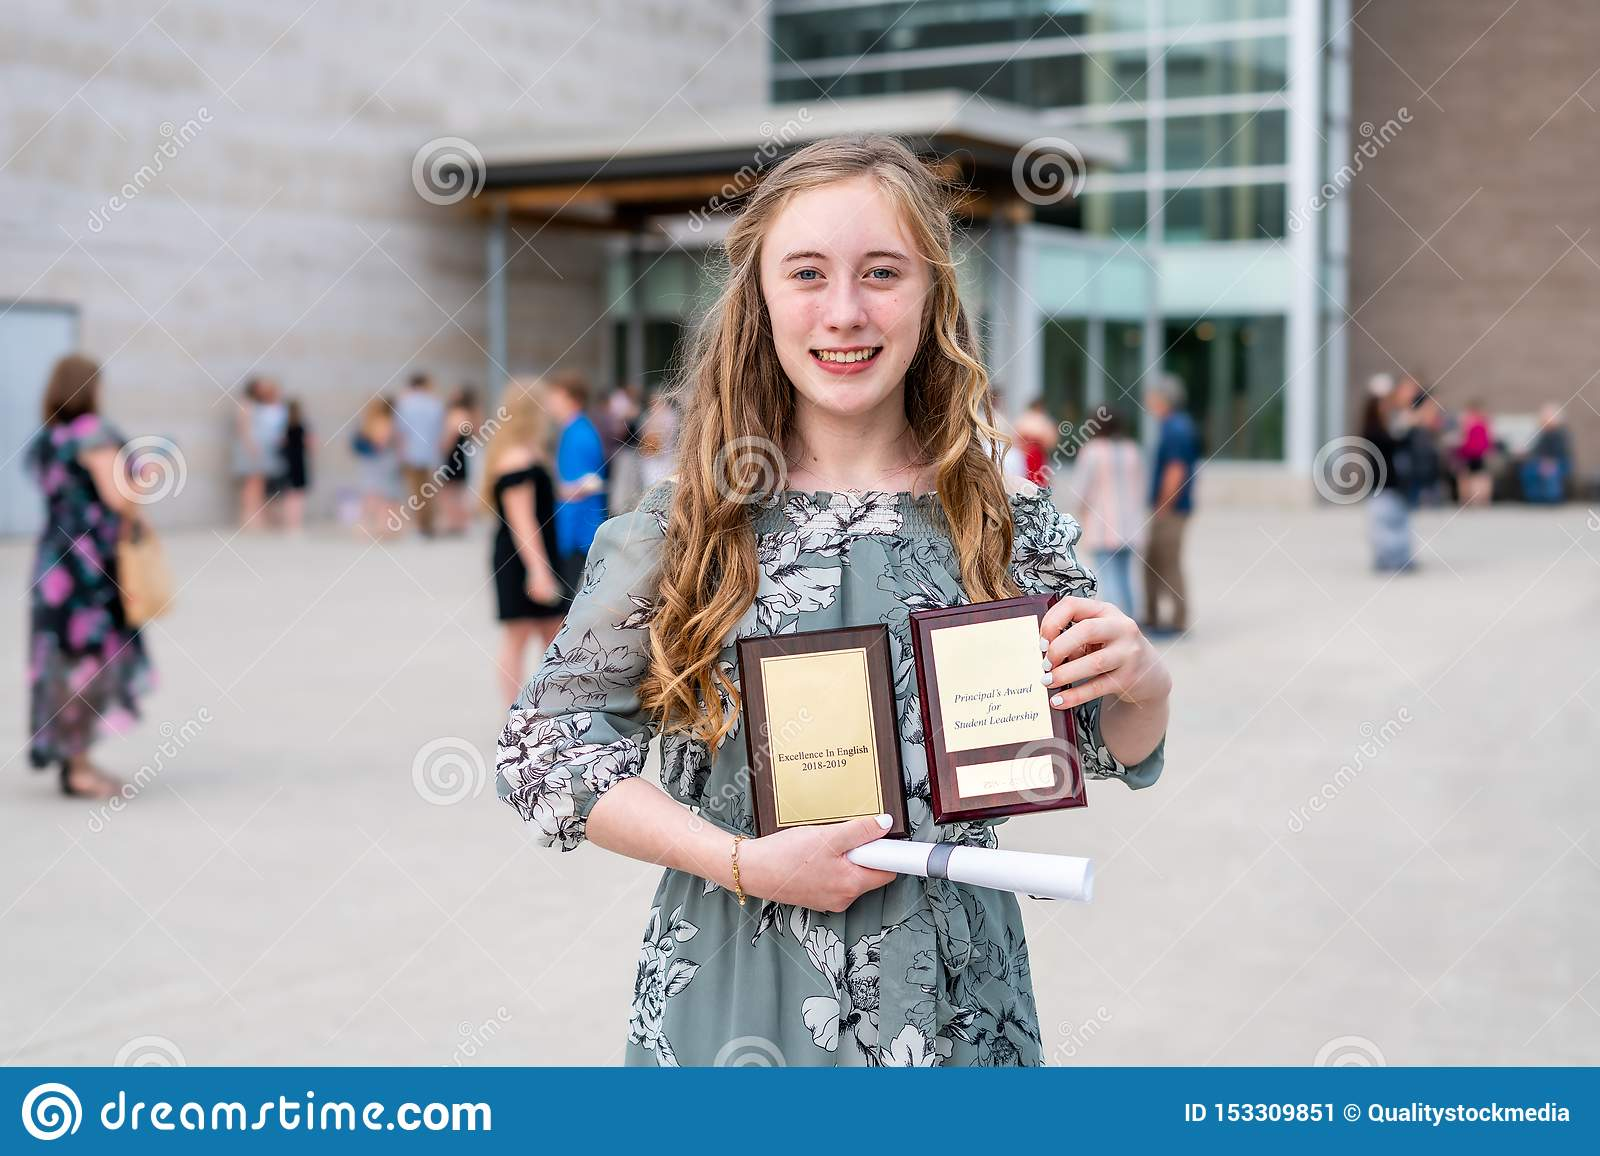 Young Teen Girl/Middle School student standing in front of school with awards and diploma after Grade 8/Middle school graduation c